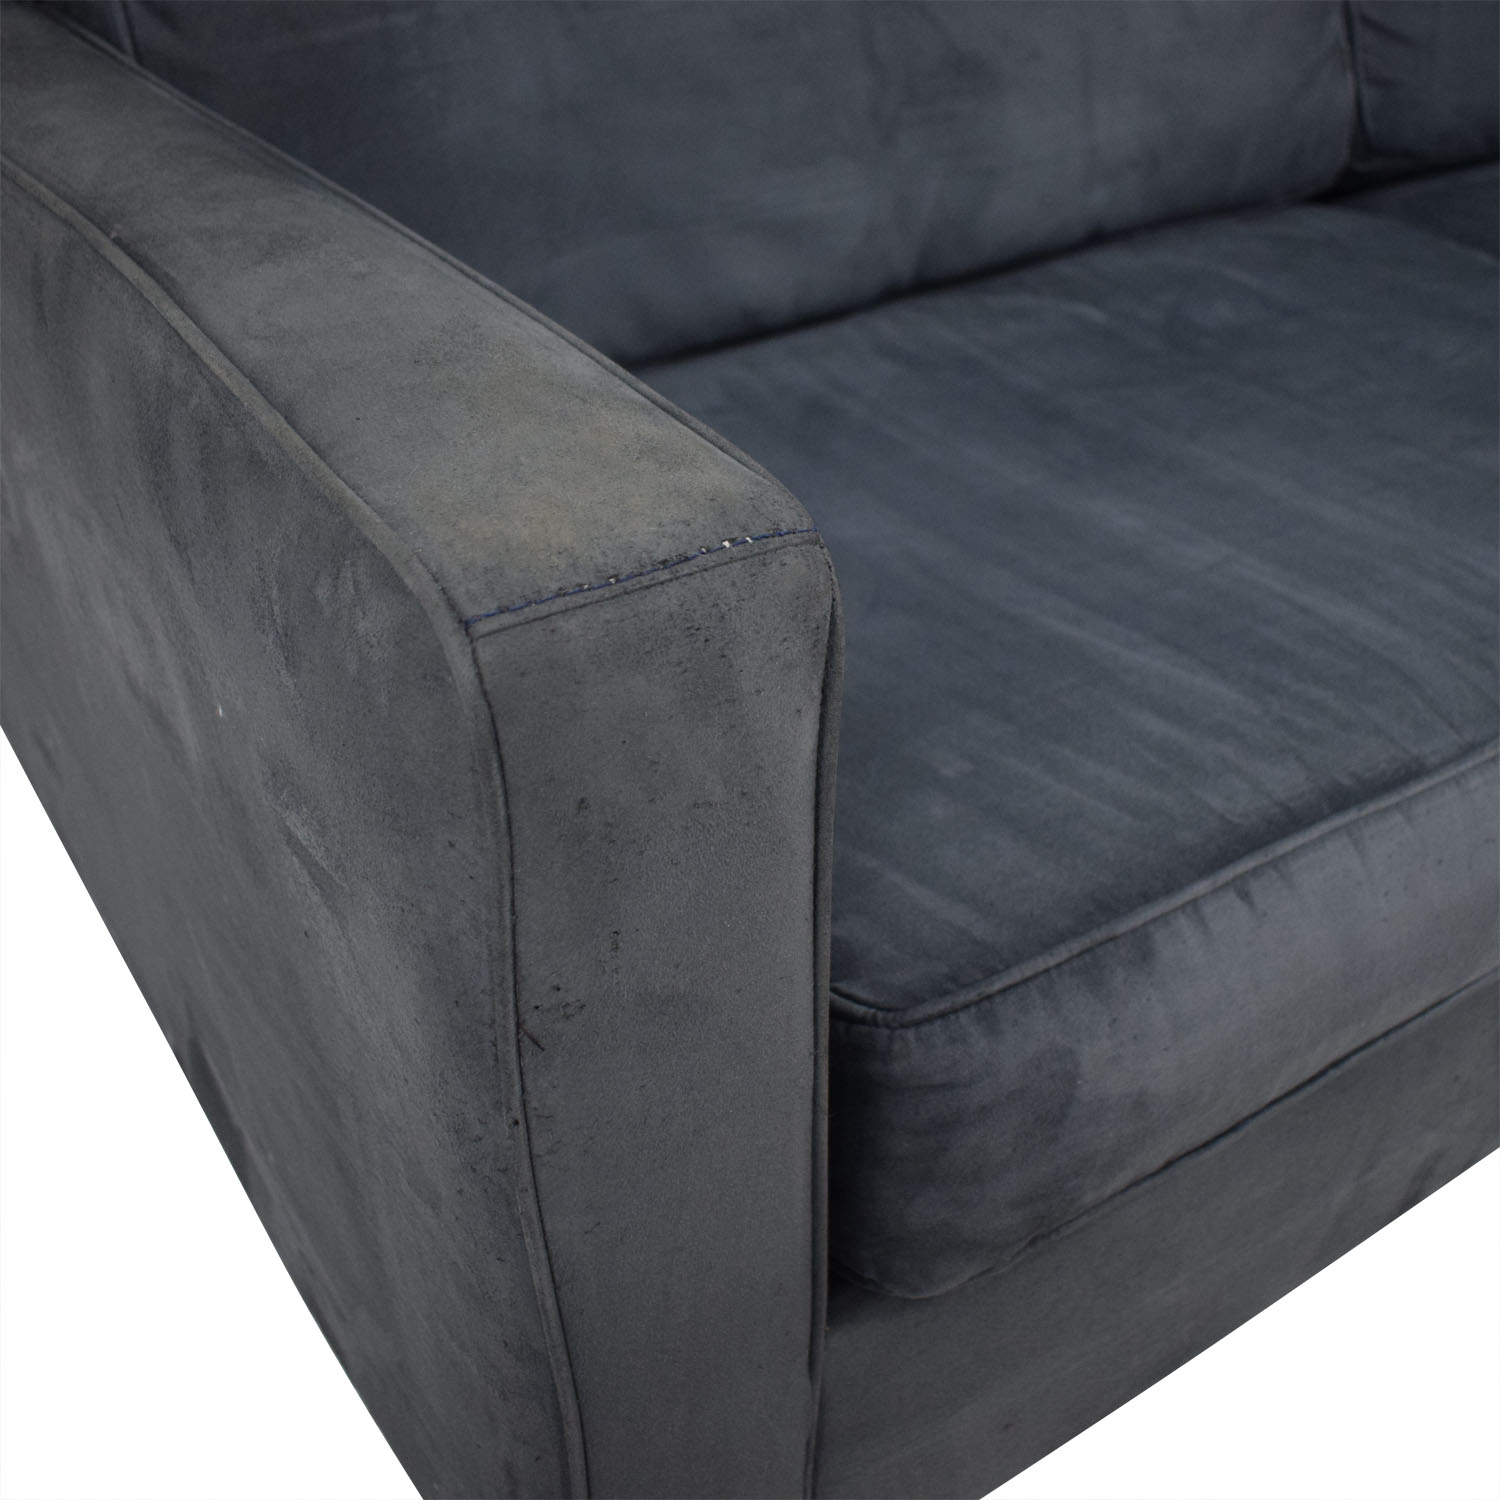 Bauhaus Furniture Navy Tufted Microfiber Sofa sale